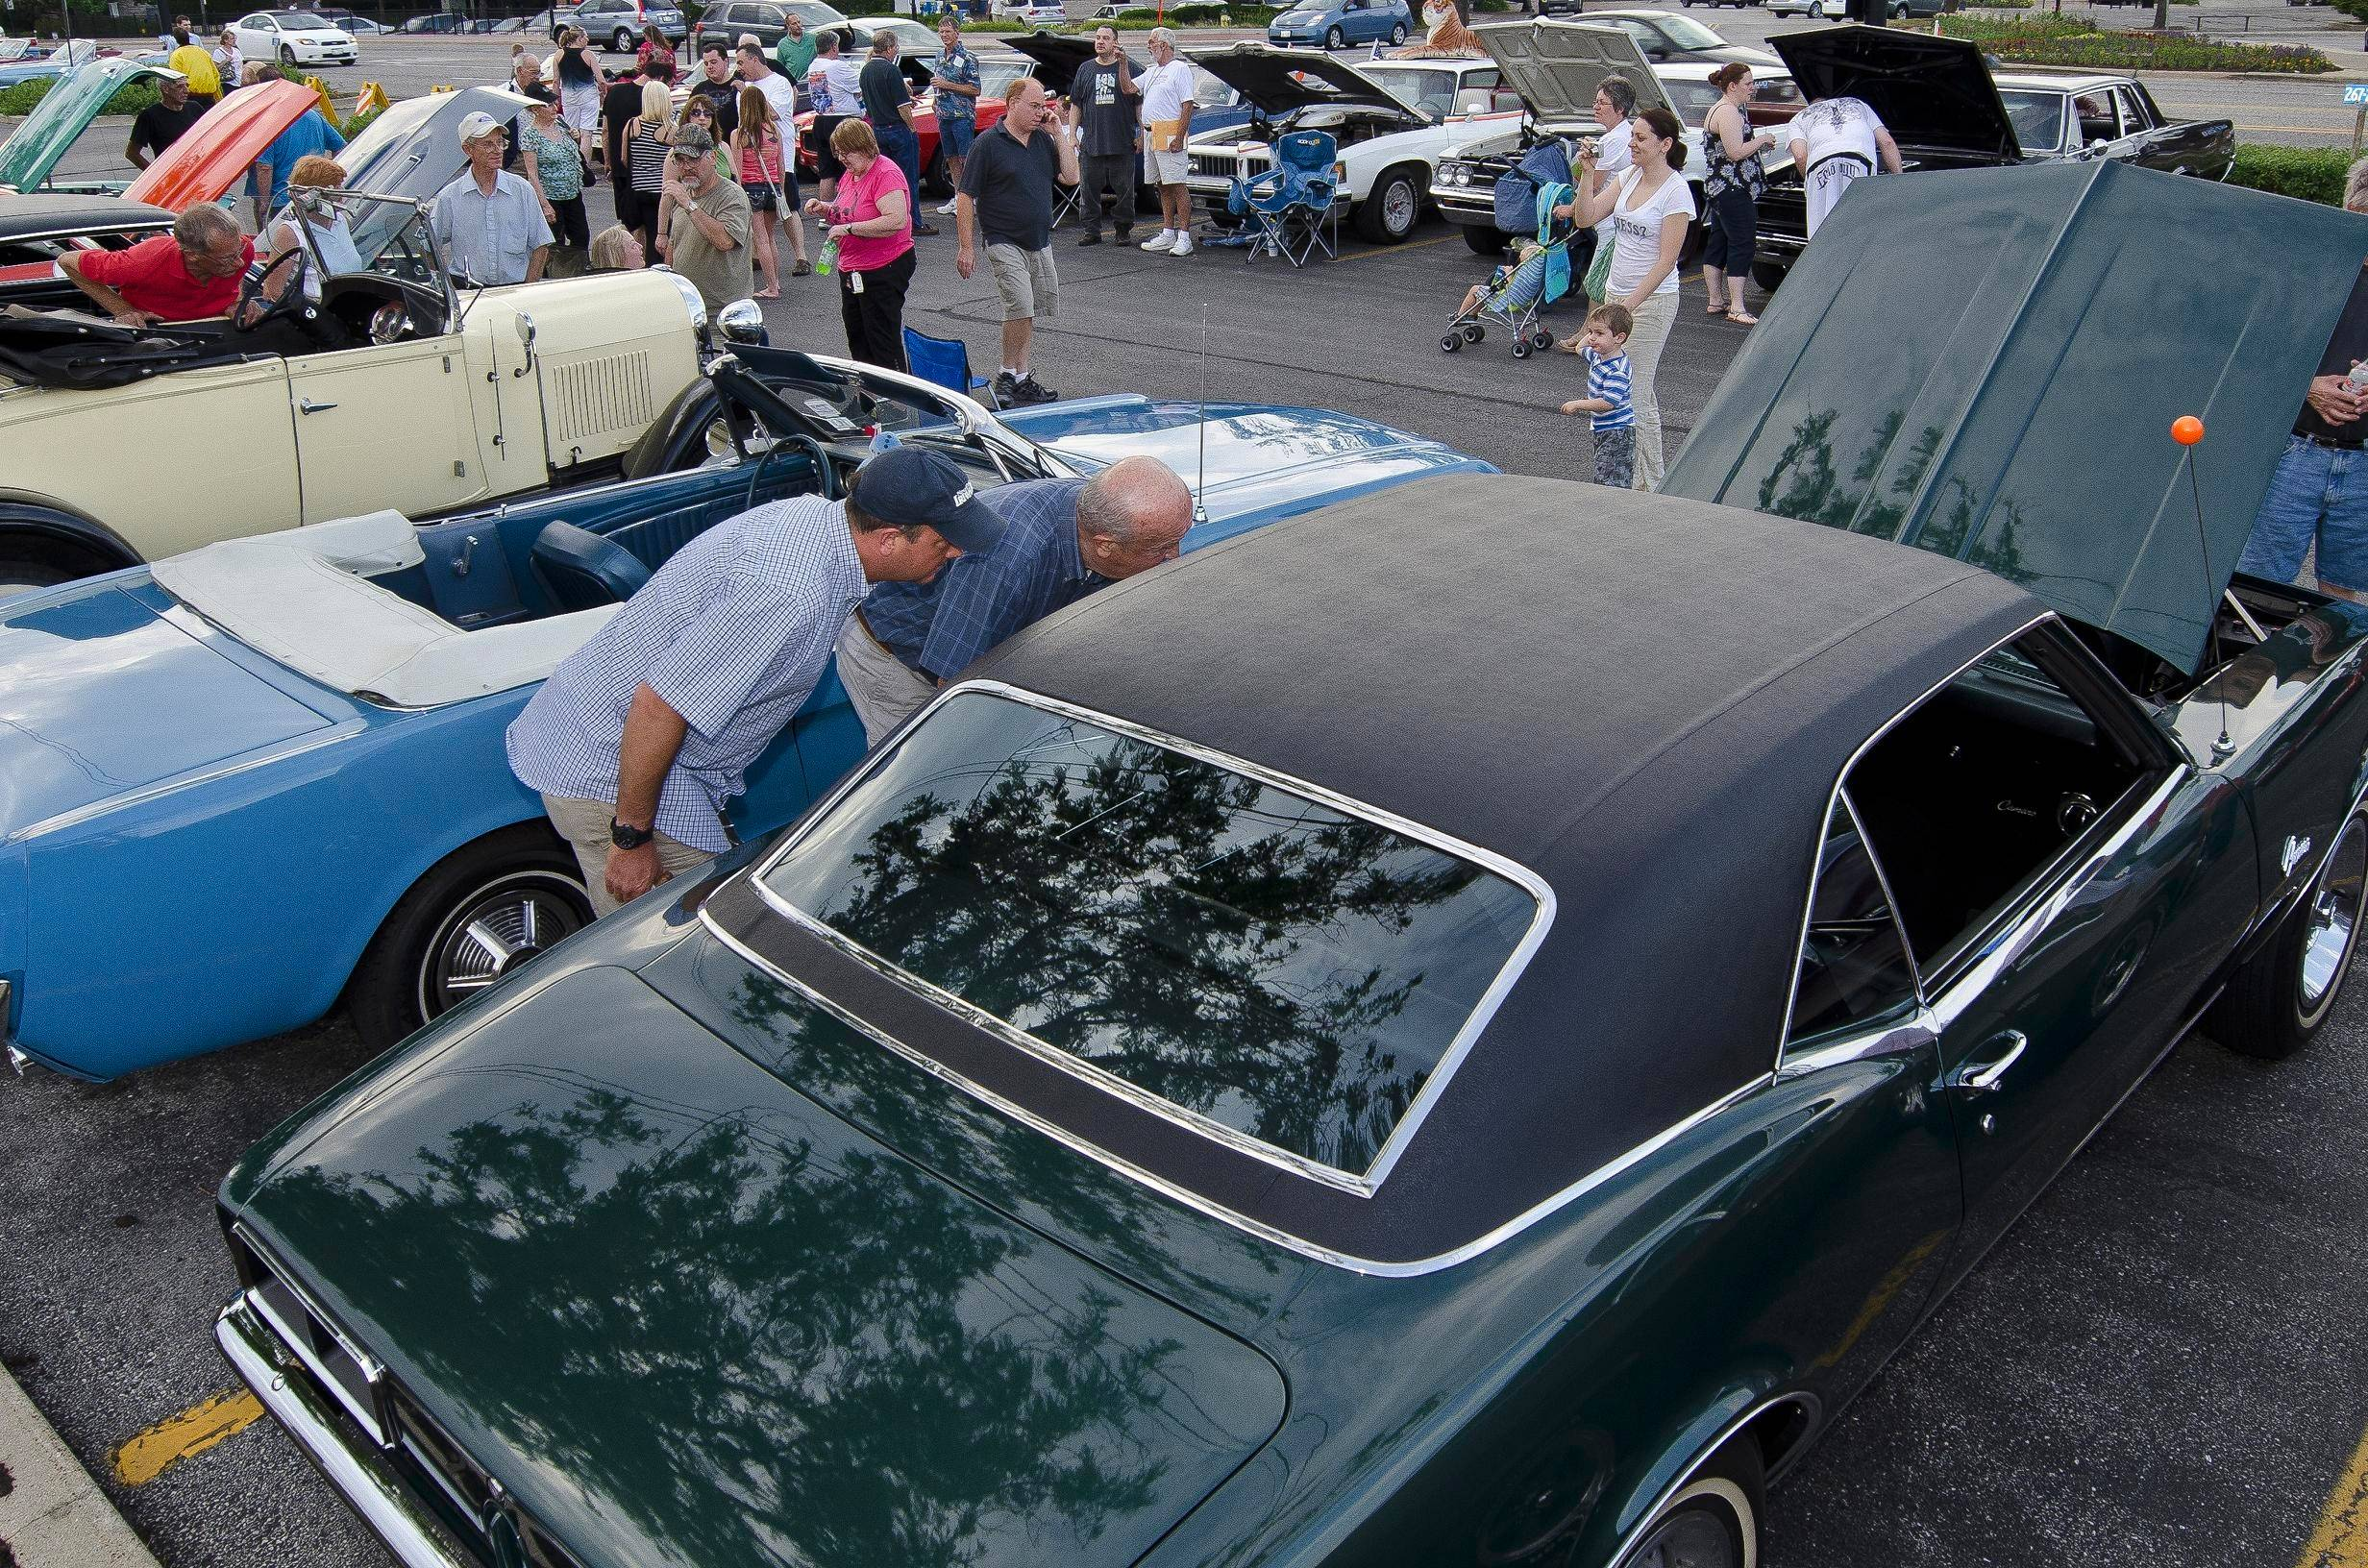 Mount Prospect's Bluesmobile Cruise Nights are Saturday evenings, May 17 to Sept. 27, in the downtown commuter train lot on Northwest Highway.